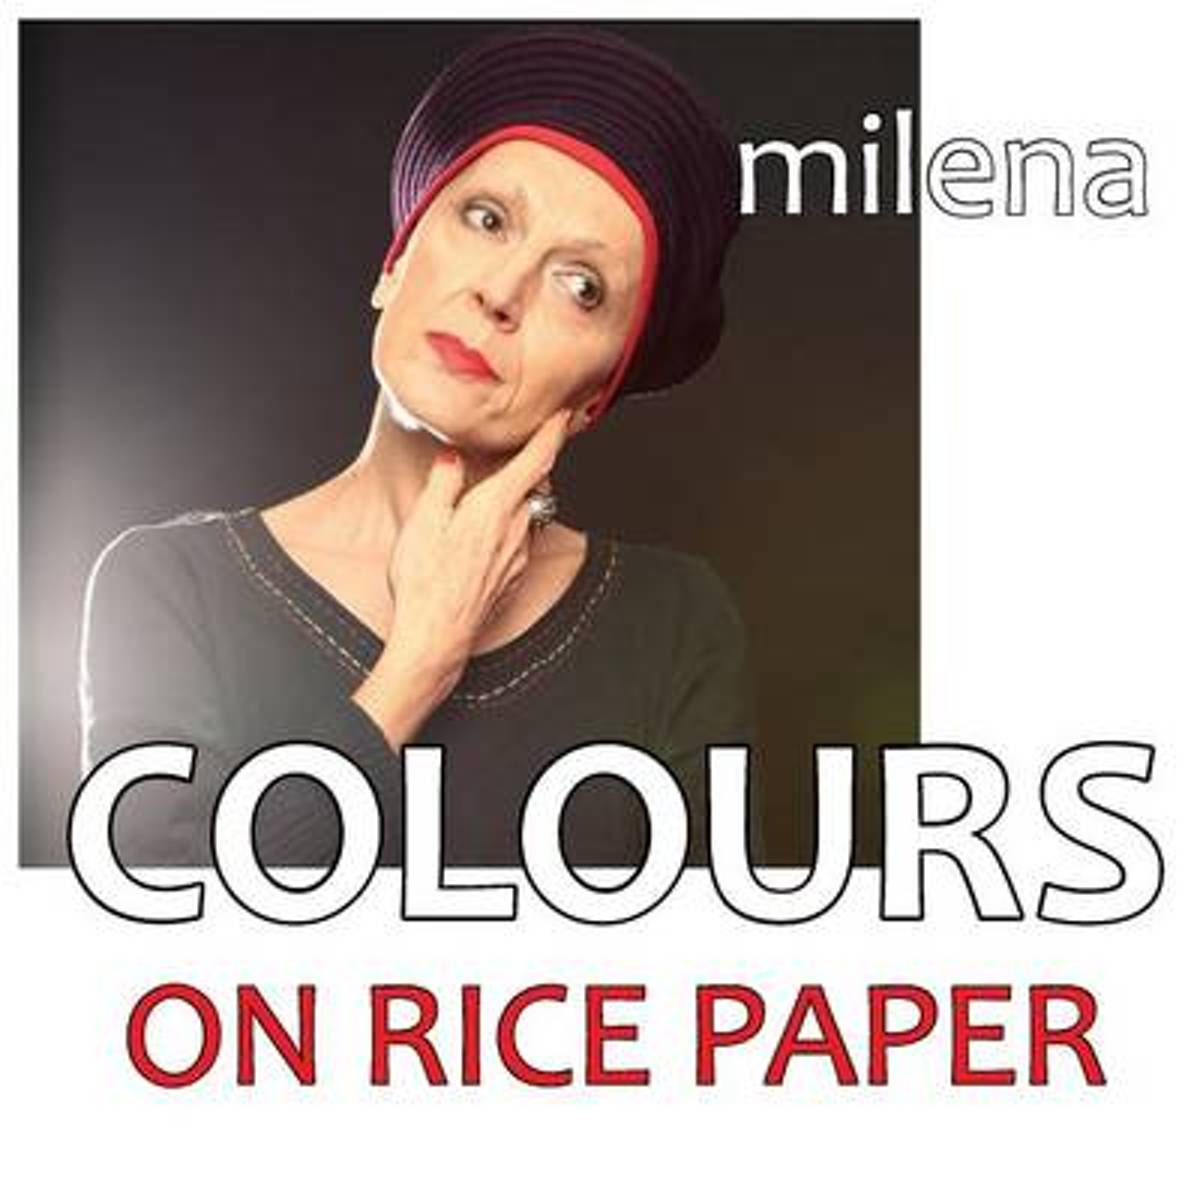 Colours on Rice Paper